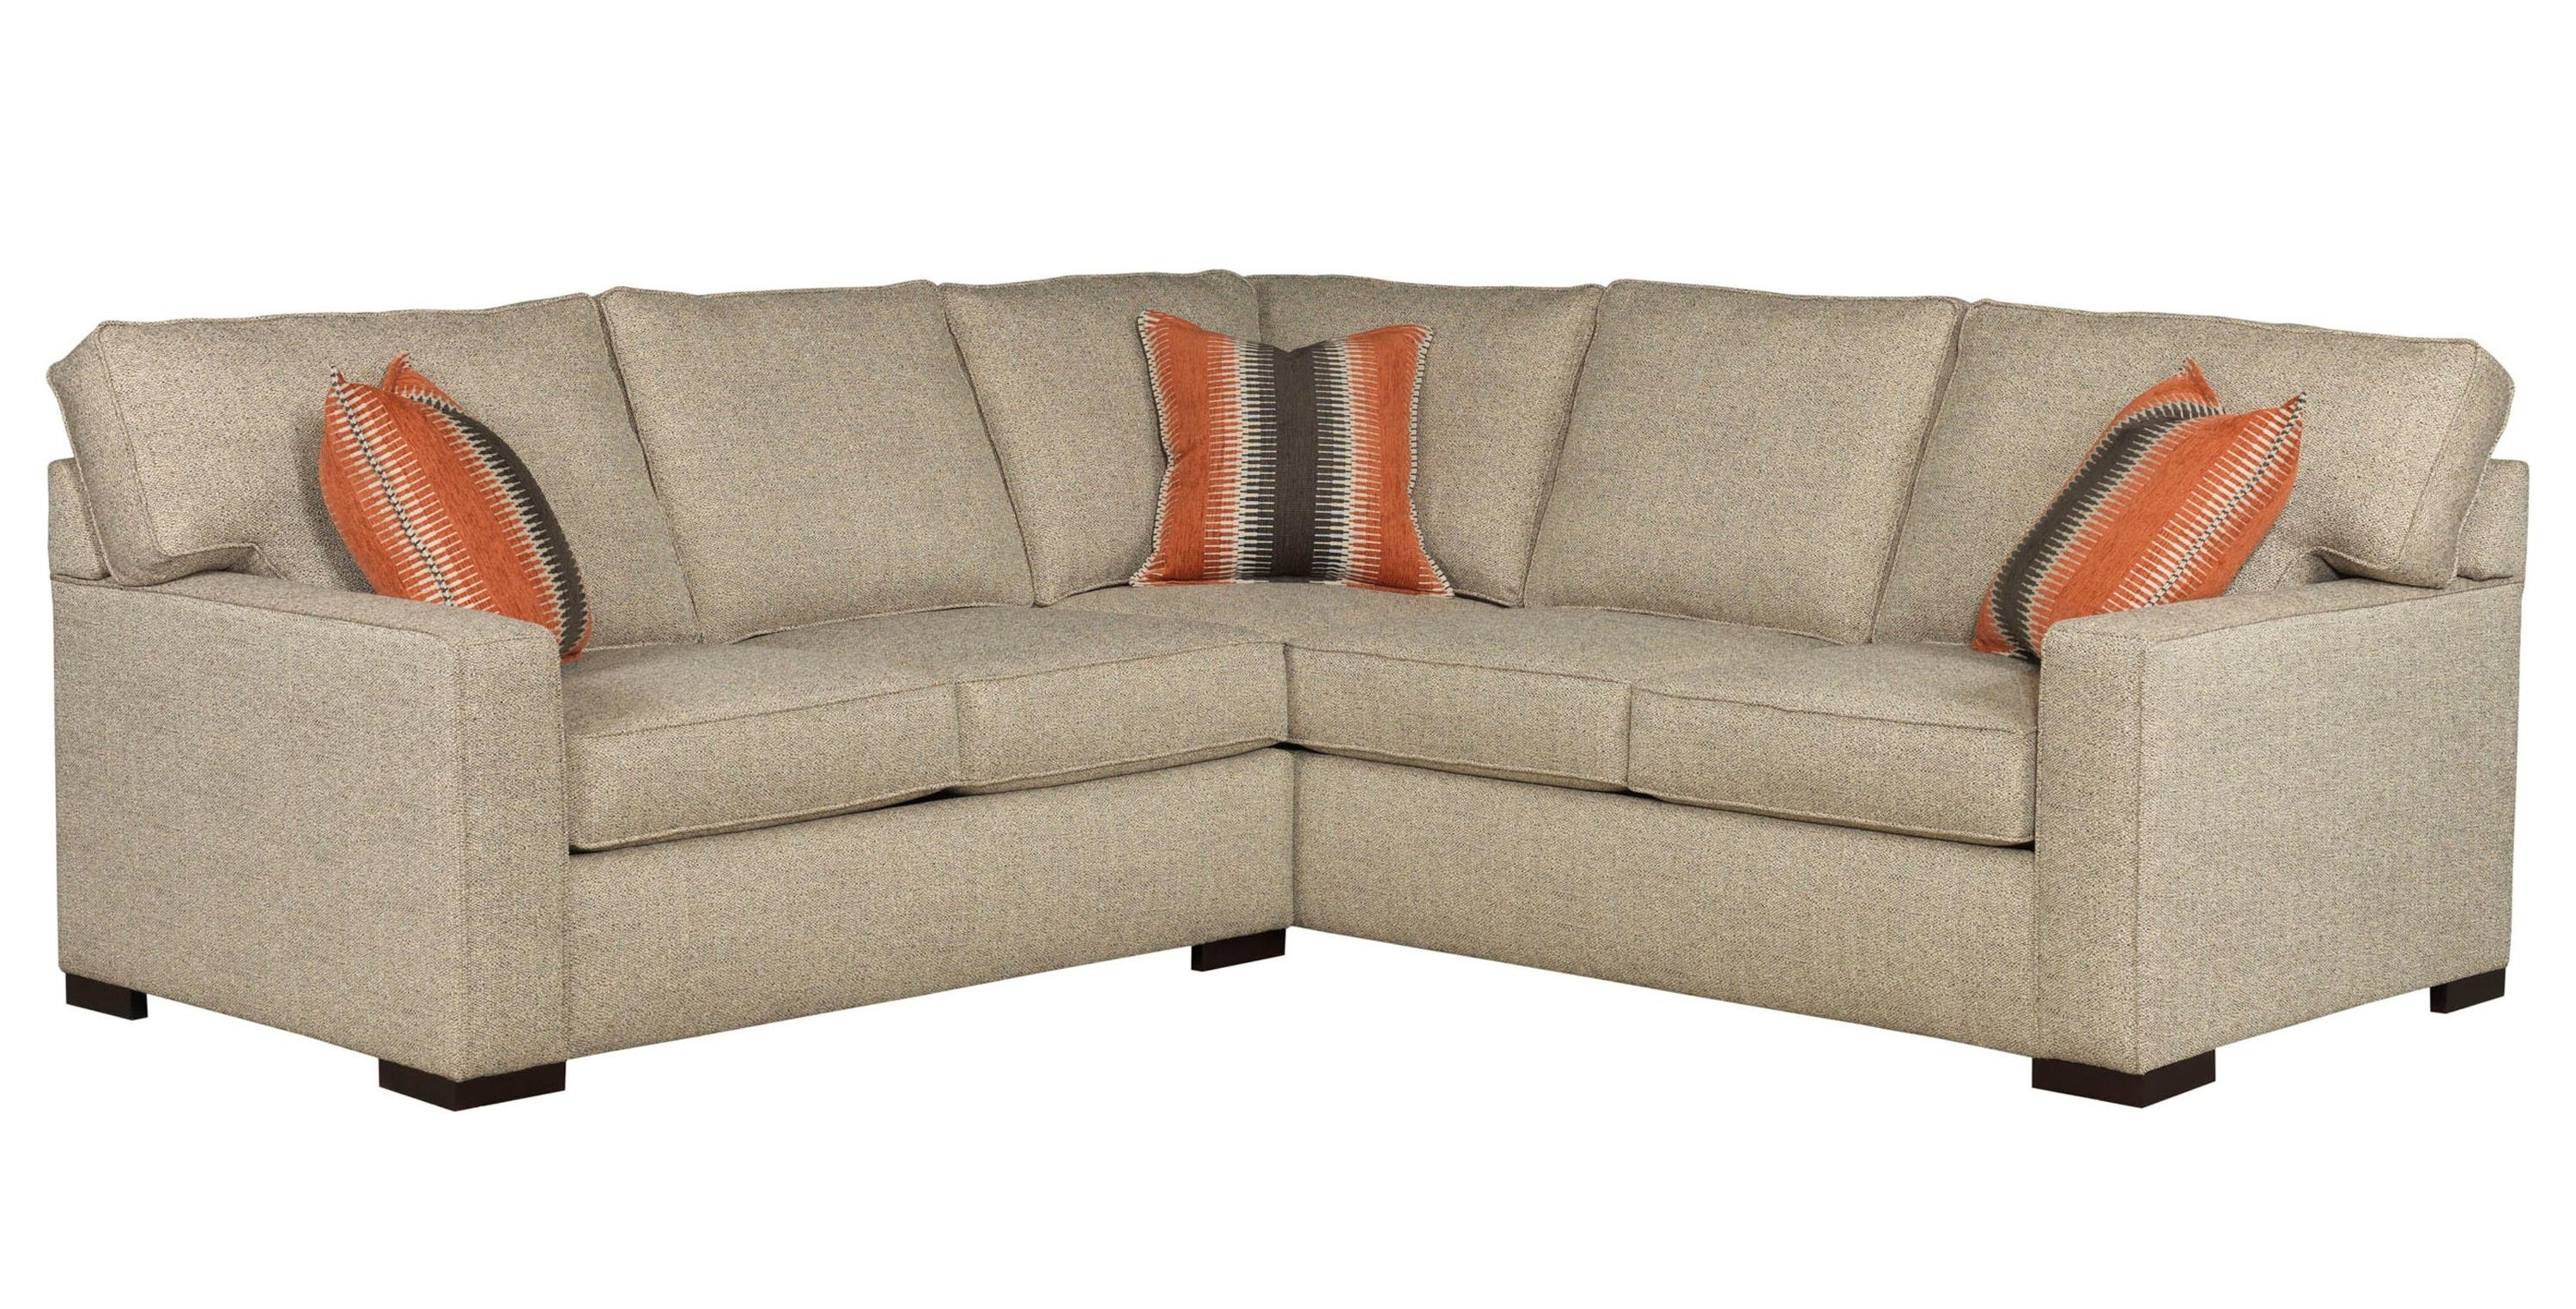 Preferred Broyhill Furniture Raphael Contemporary Two Piece Sectional Sofa Regarding Salt Lake City Sectional Sofas (View 11 of 20)